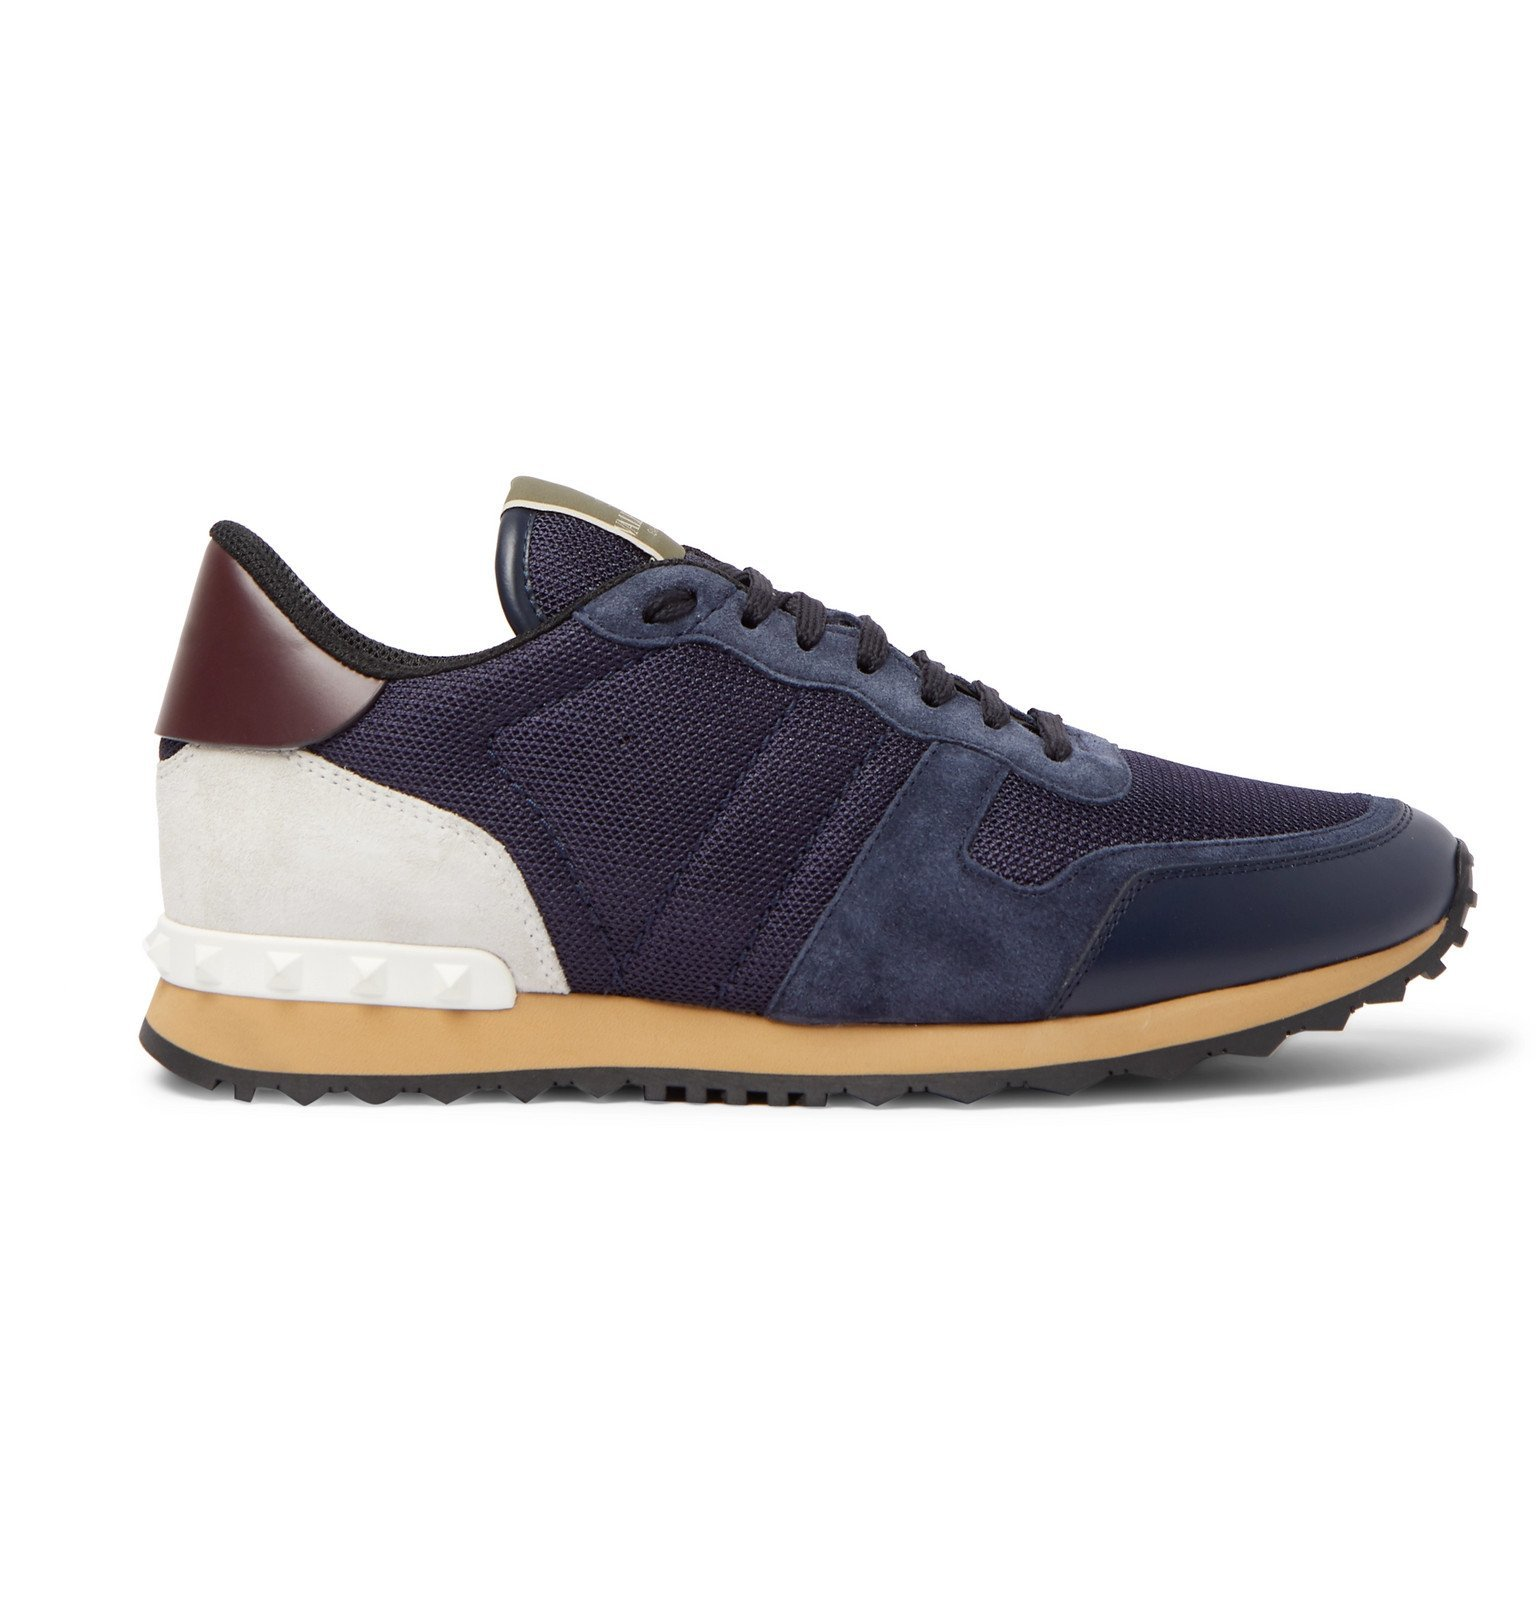 Valentino - Valentino Garavani Rockrunner Suede, Leather and Canvas Sneakers - Blue